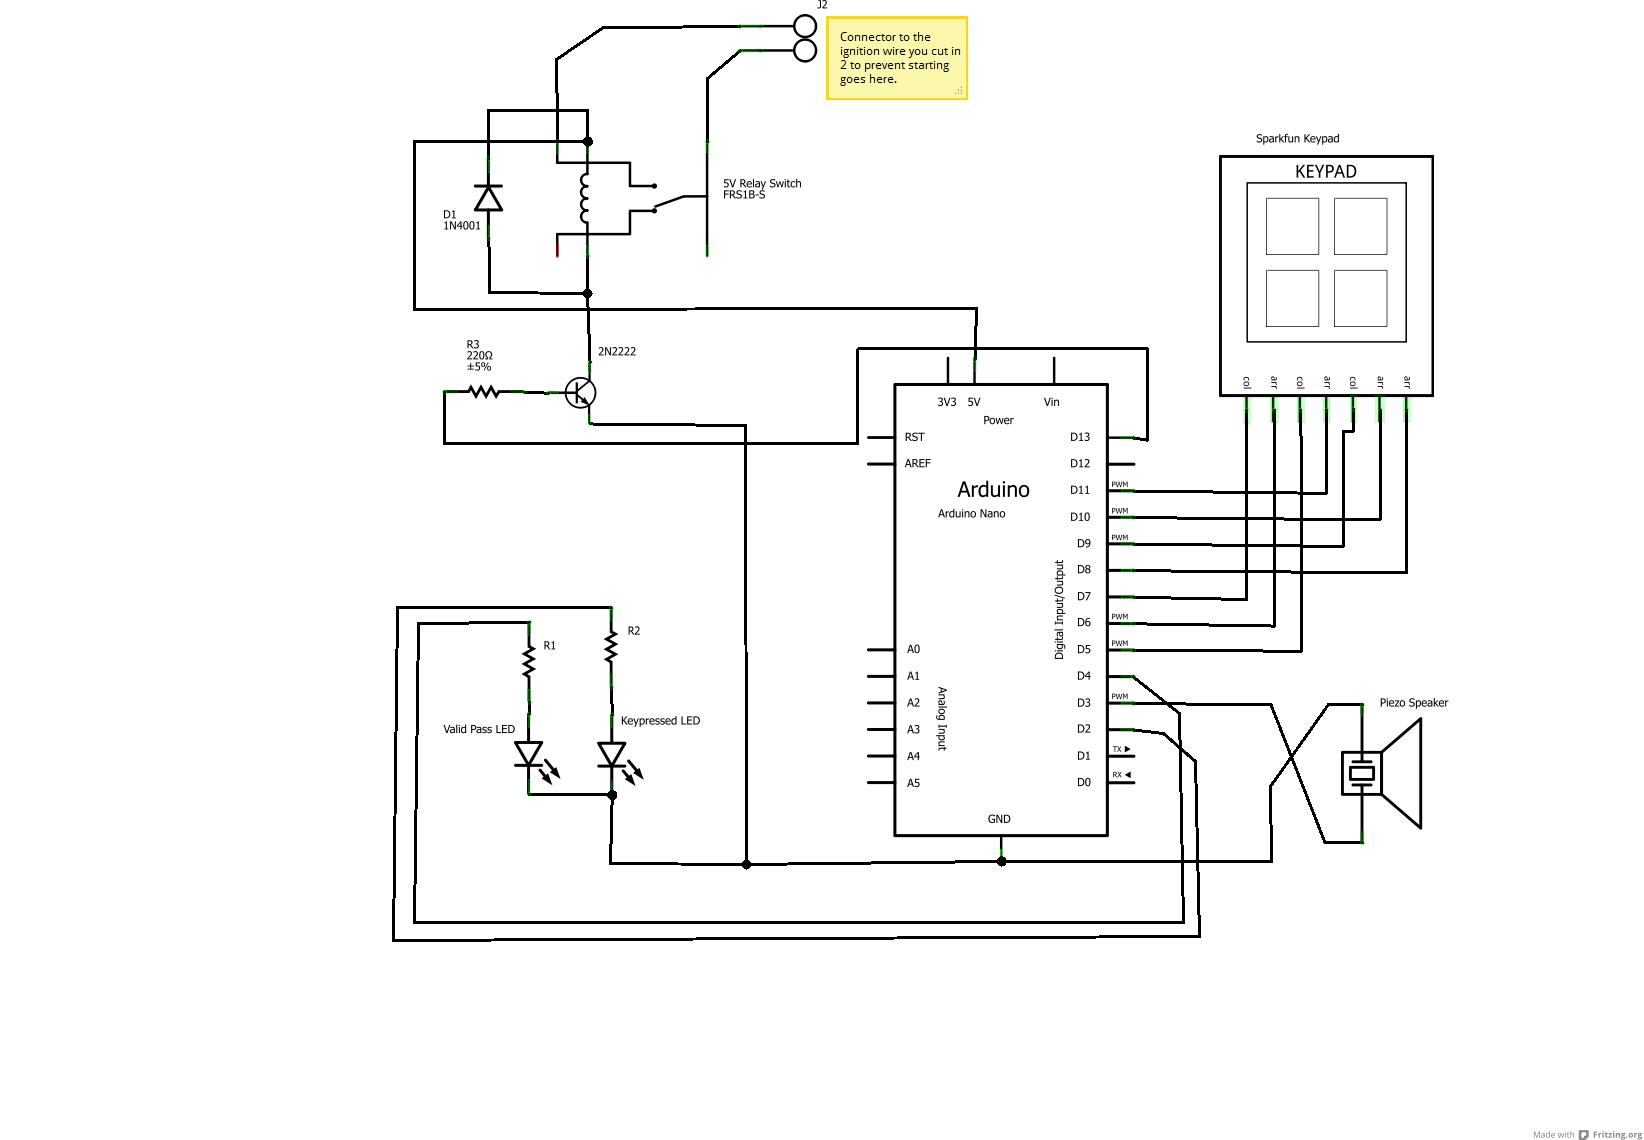 Bluetooth Headset Circuit Diagram – The Wiring Diagram ...